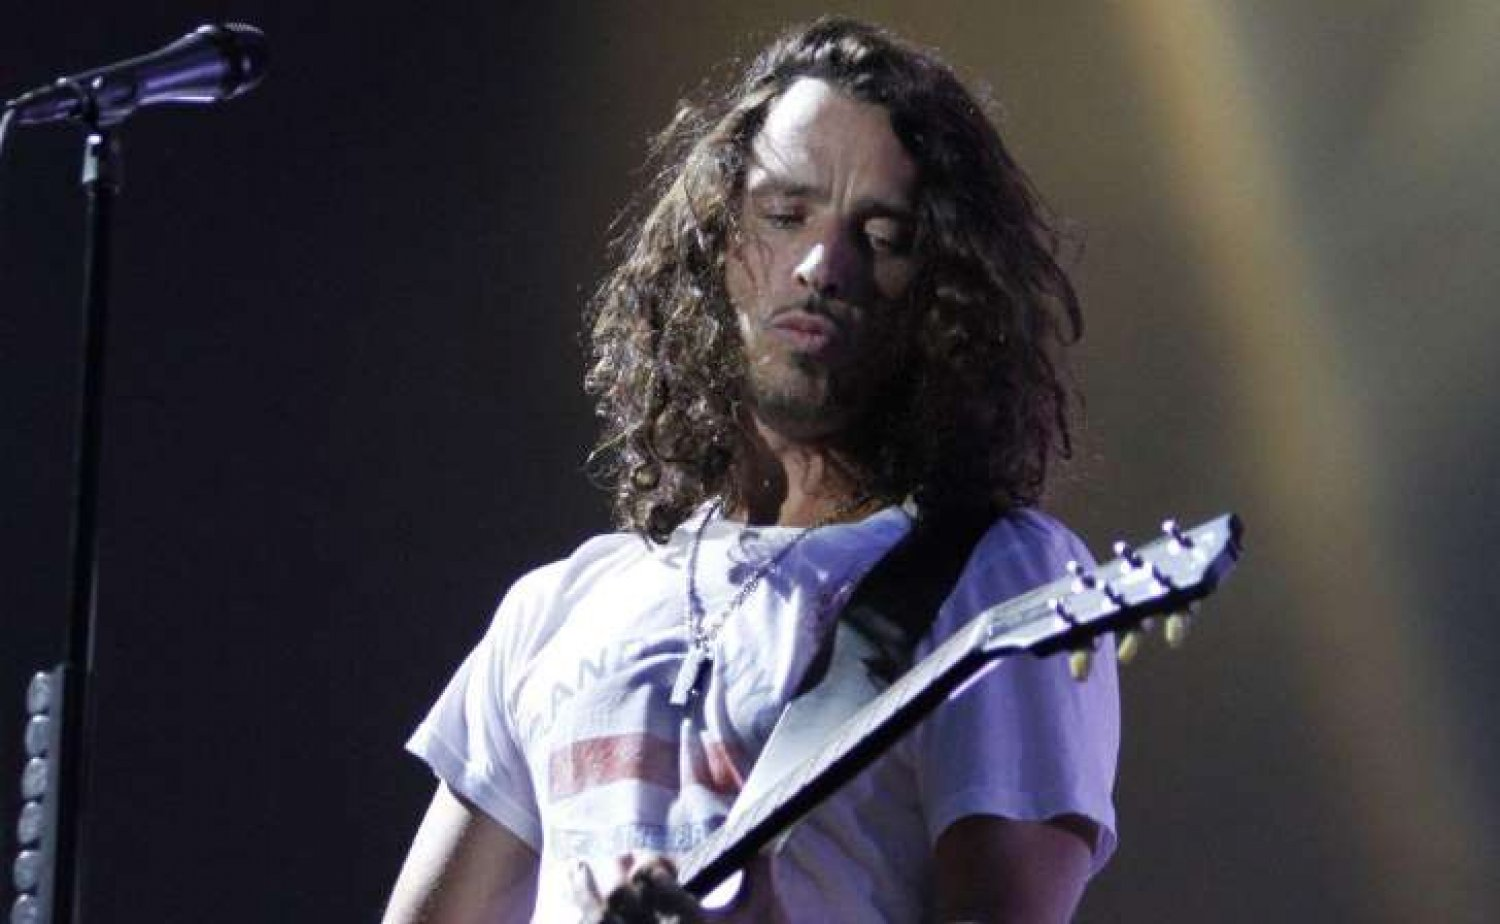 Muere Chris Cornell, líder de Soundgarden y Audioslave-33764